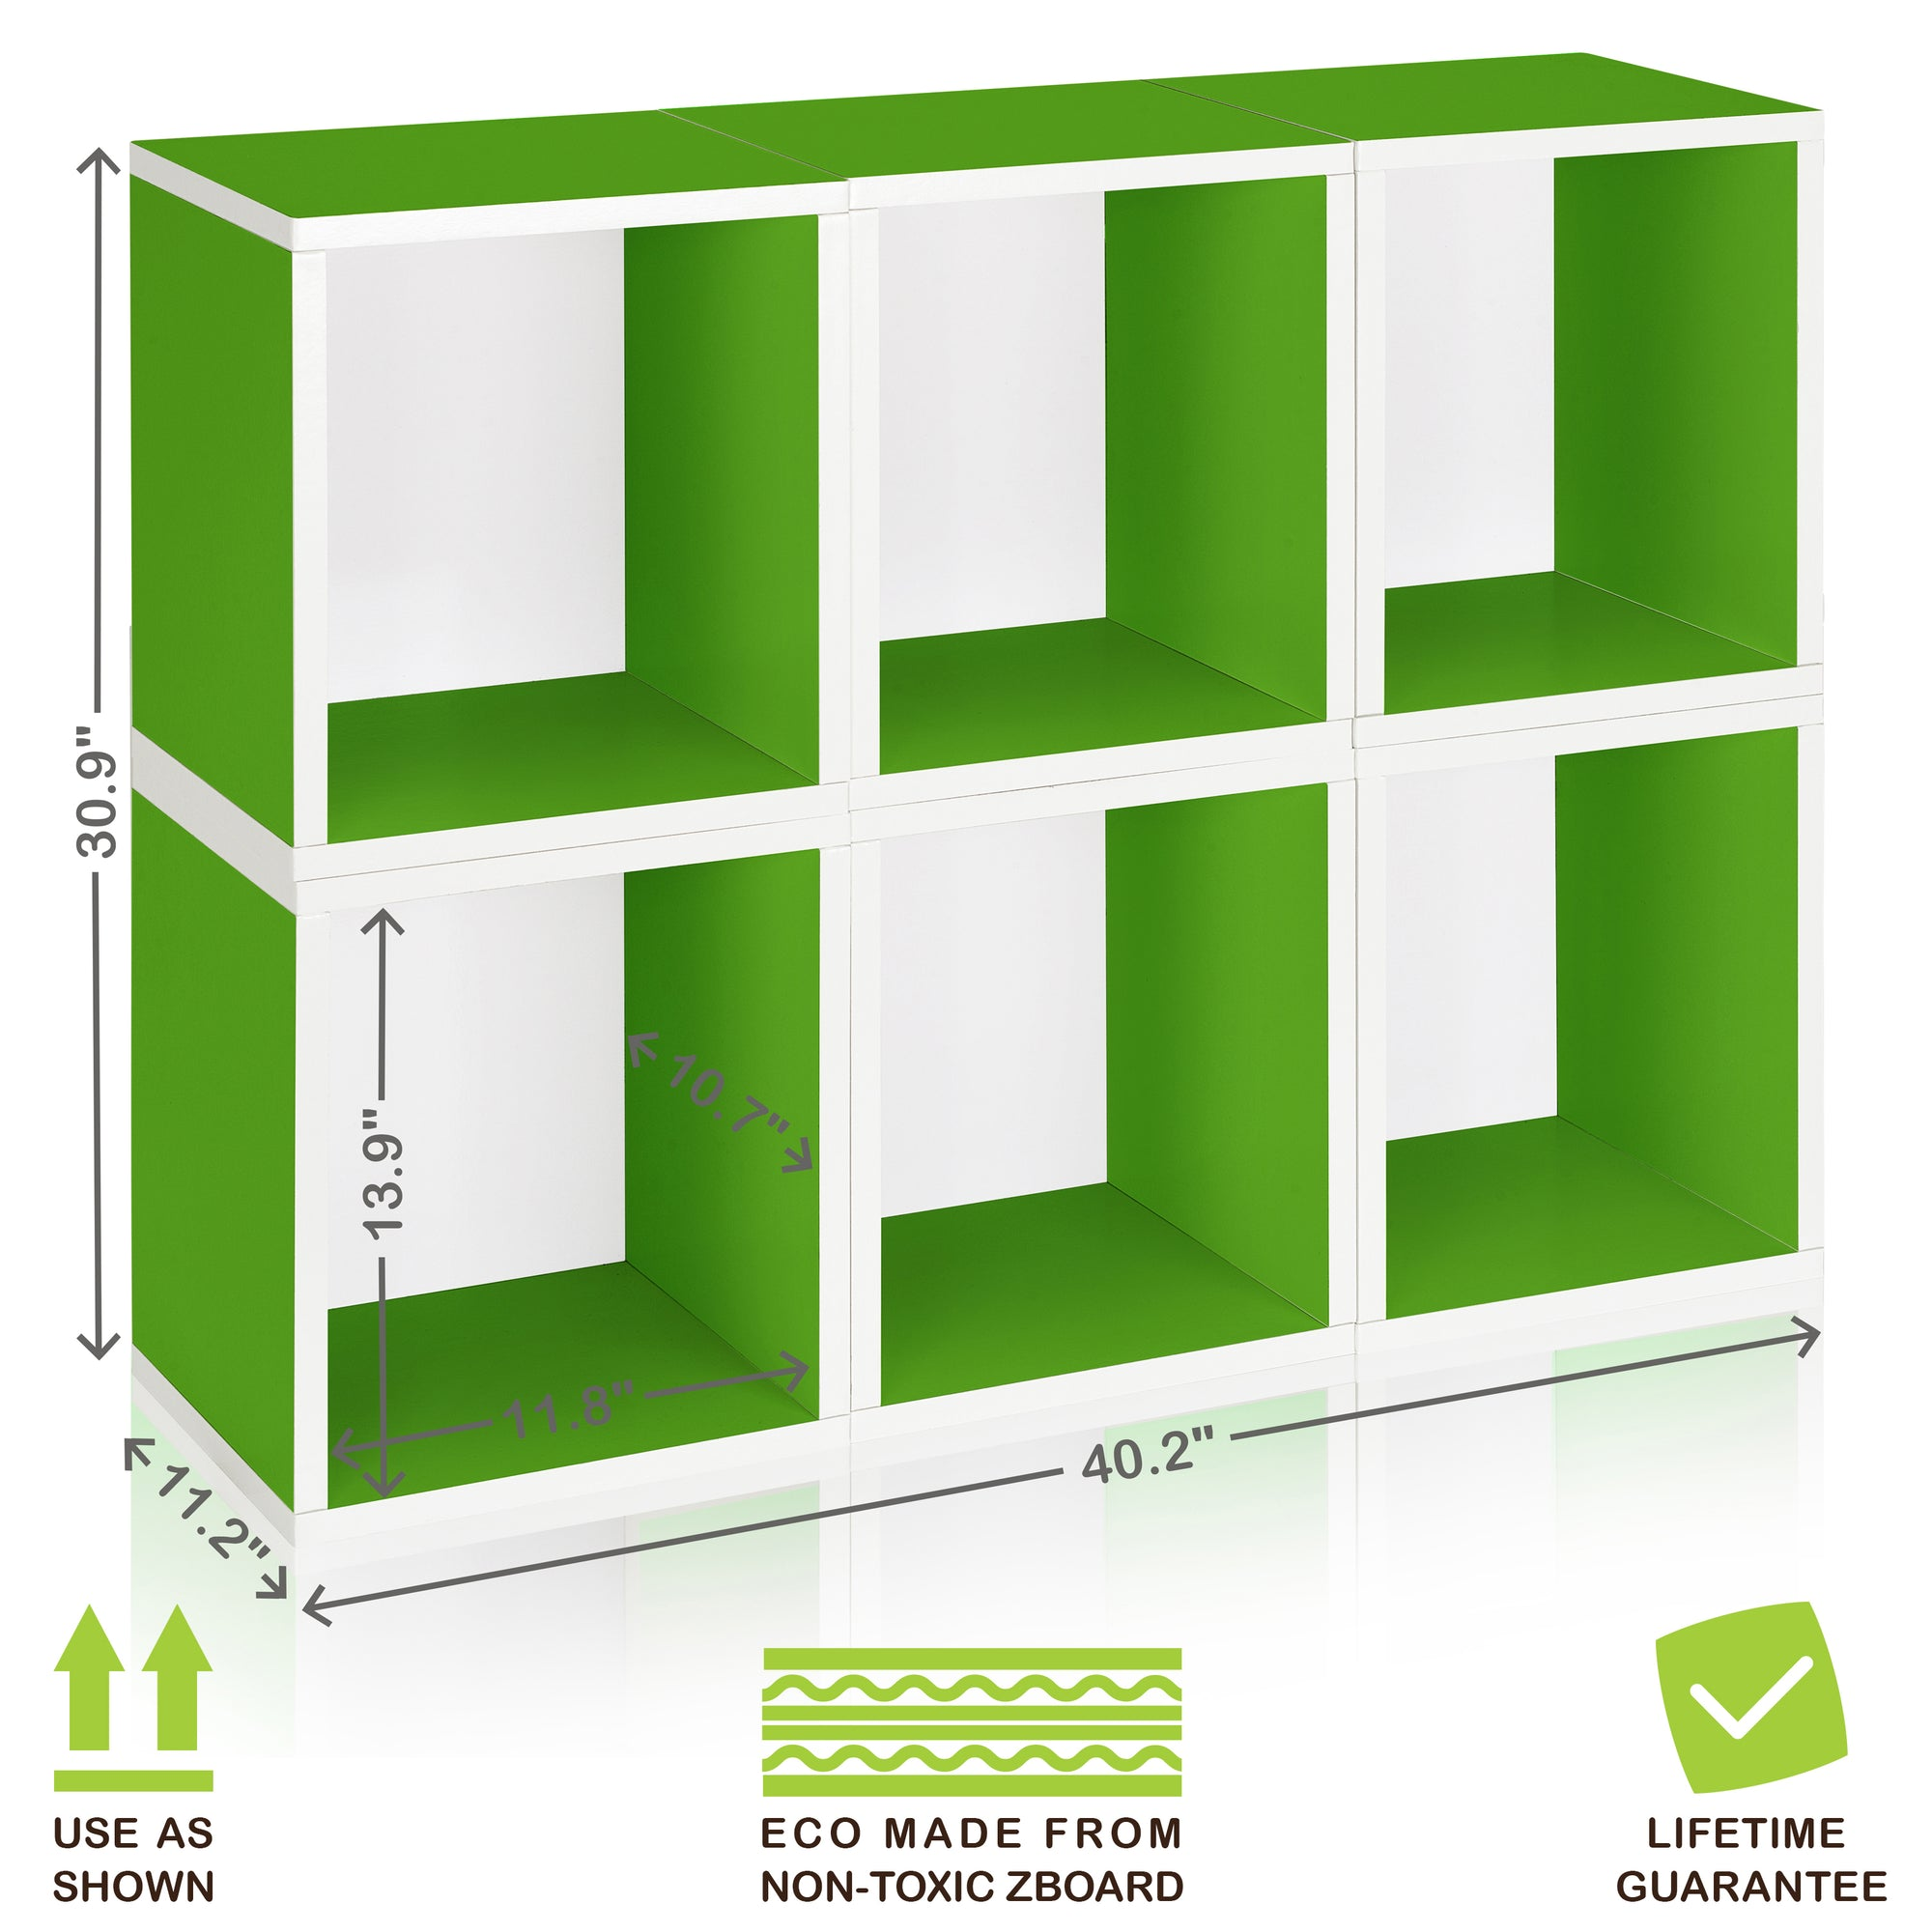 Swell 6 Stackable Cube Storage Green And Modular Cube Bookcase Download Free Architecture Designs Embacsunscenecom